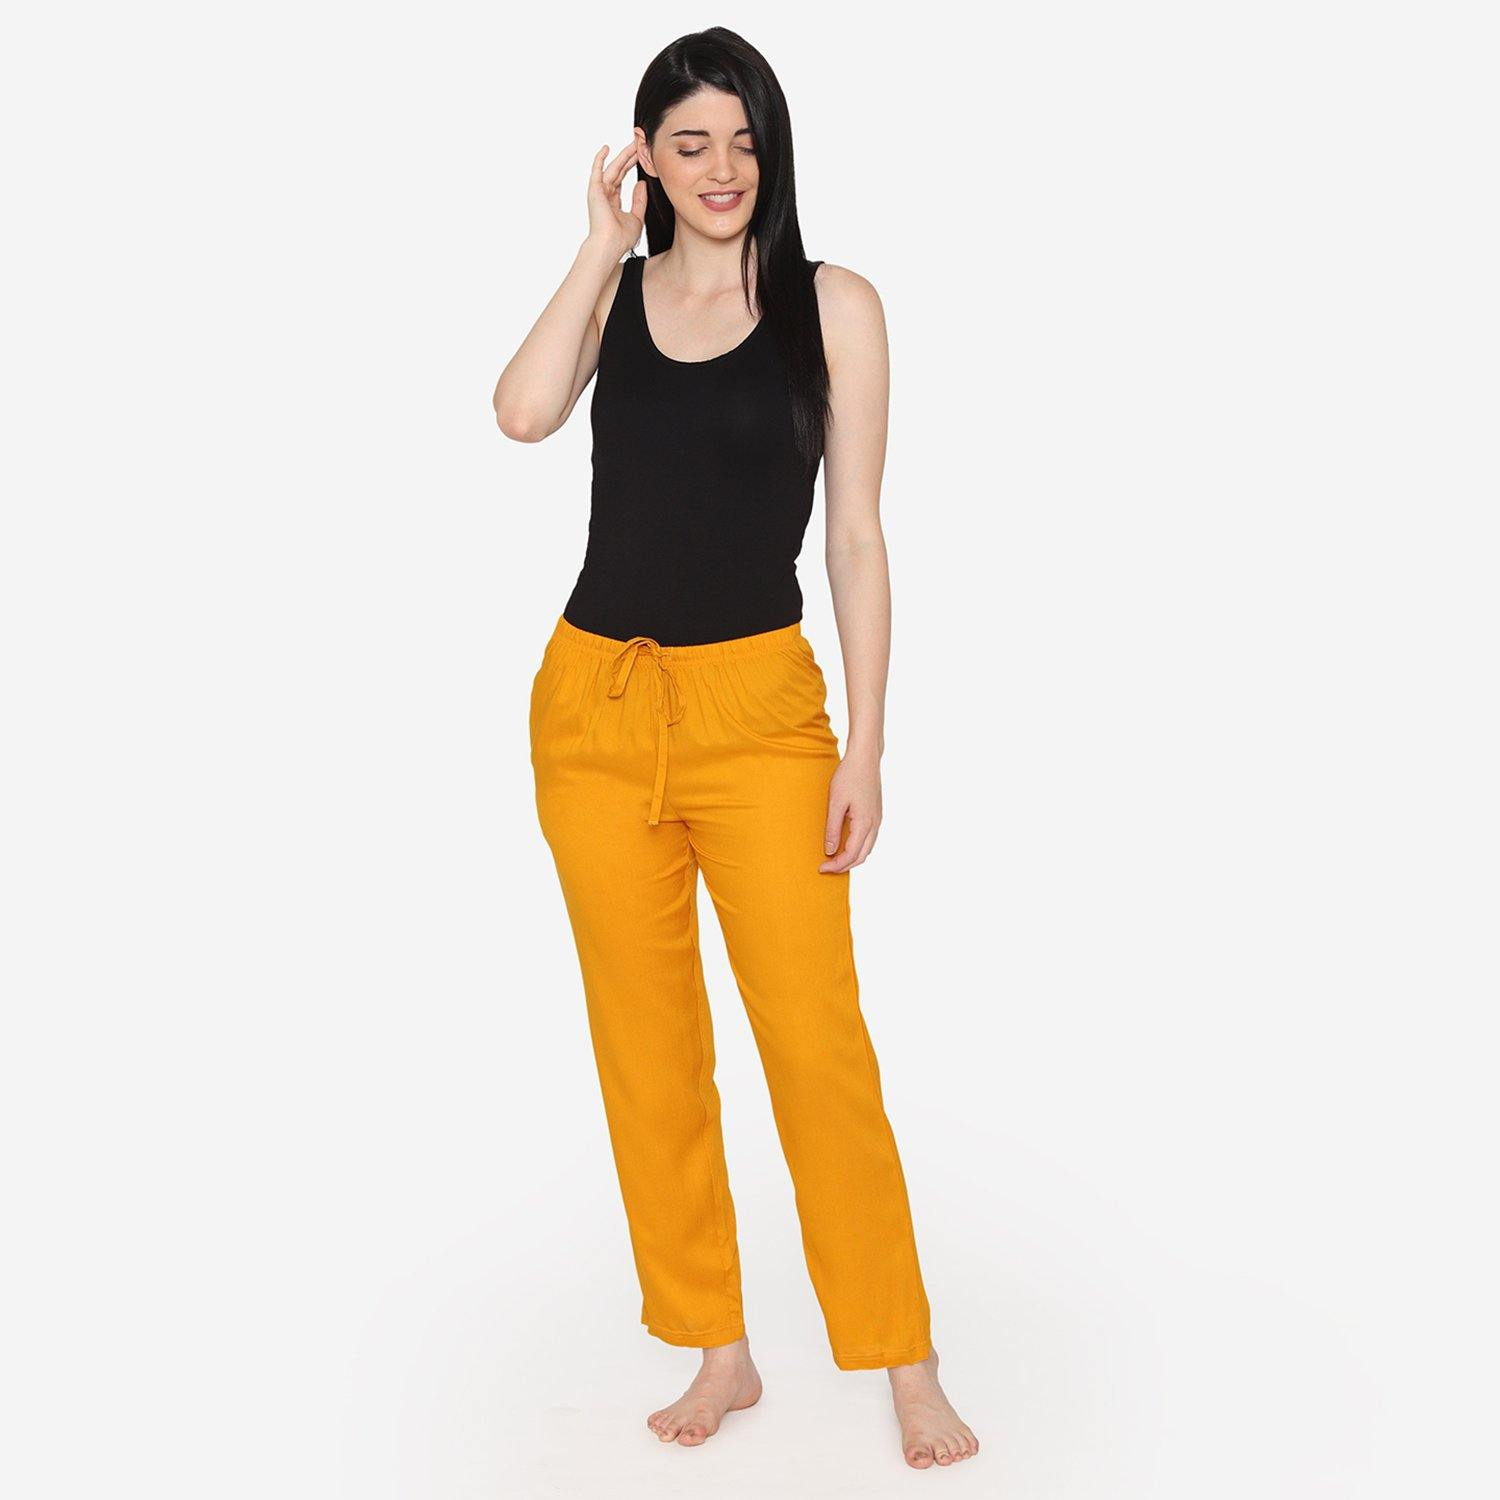 Women's Plain Lower With Drawstring - Mustard